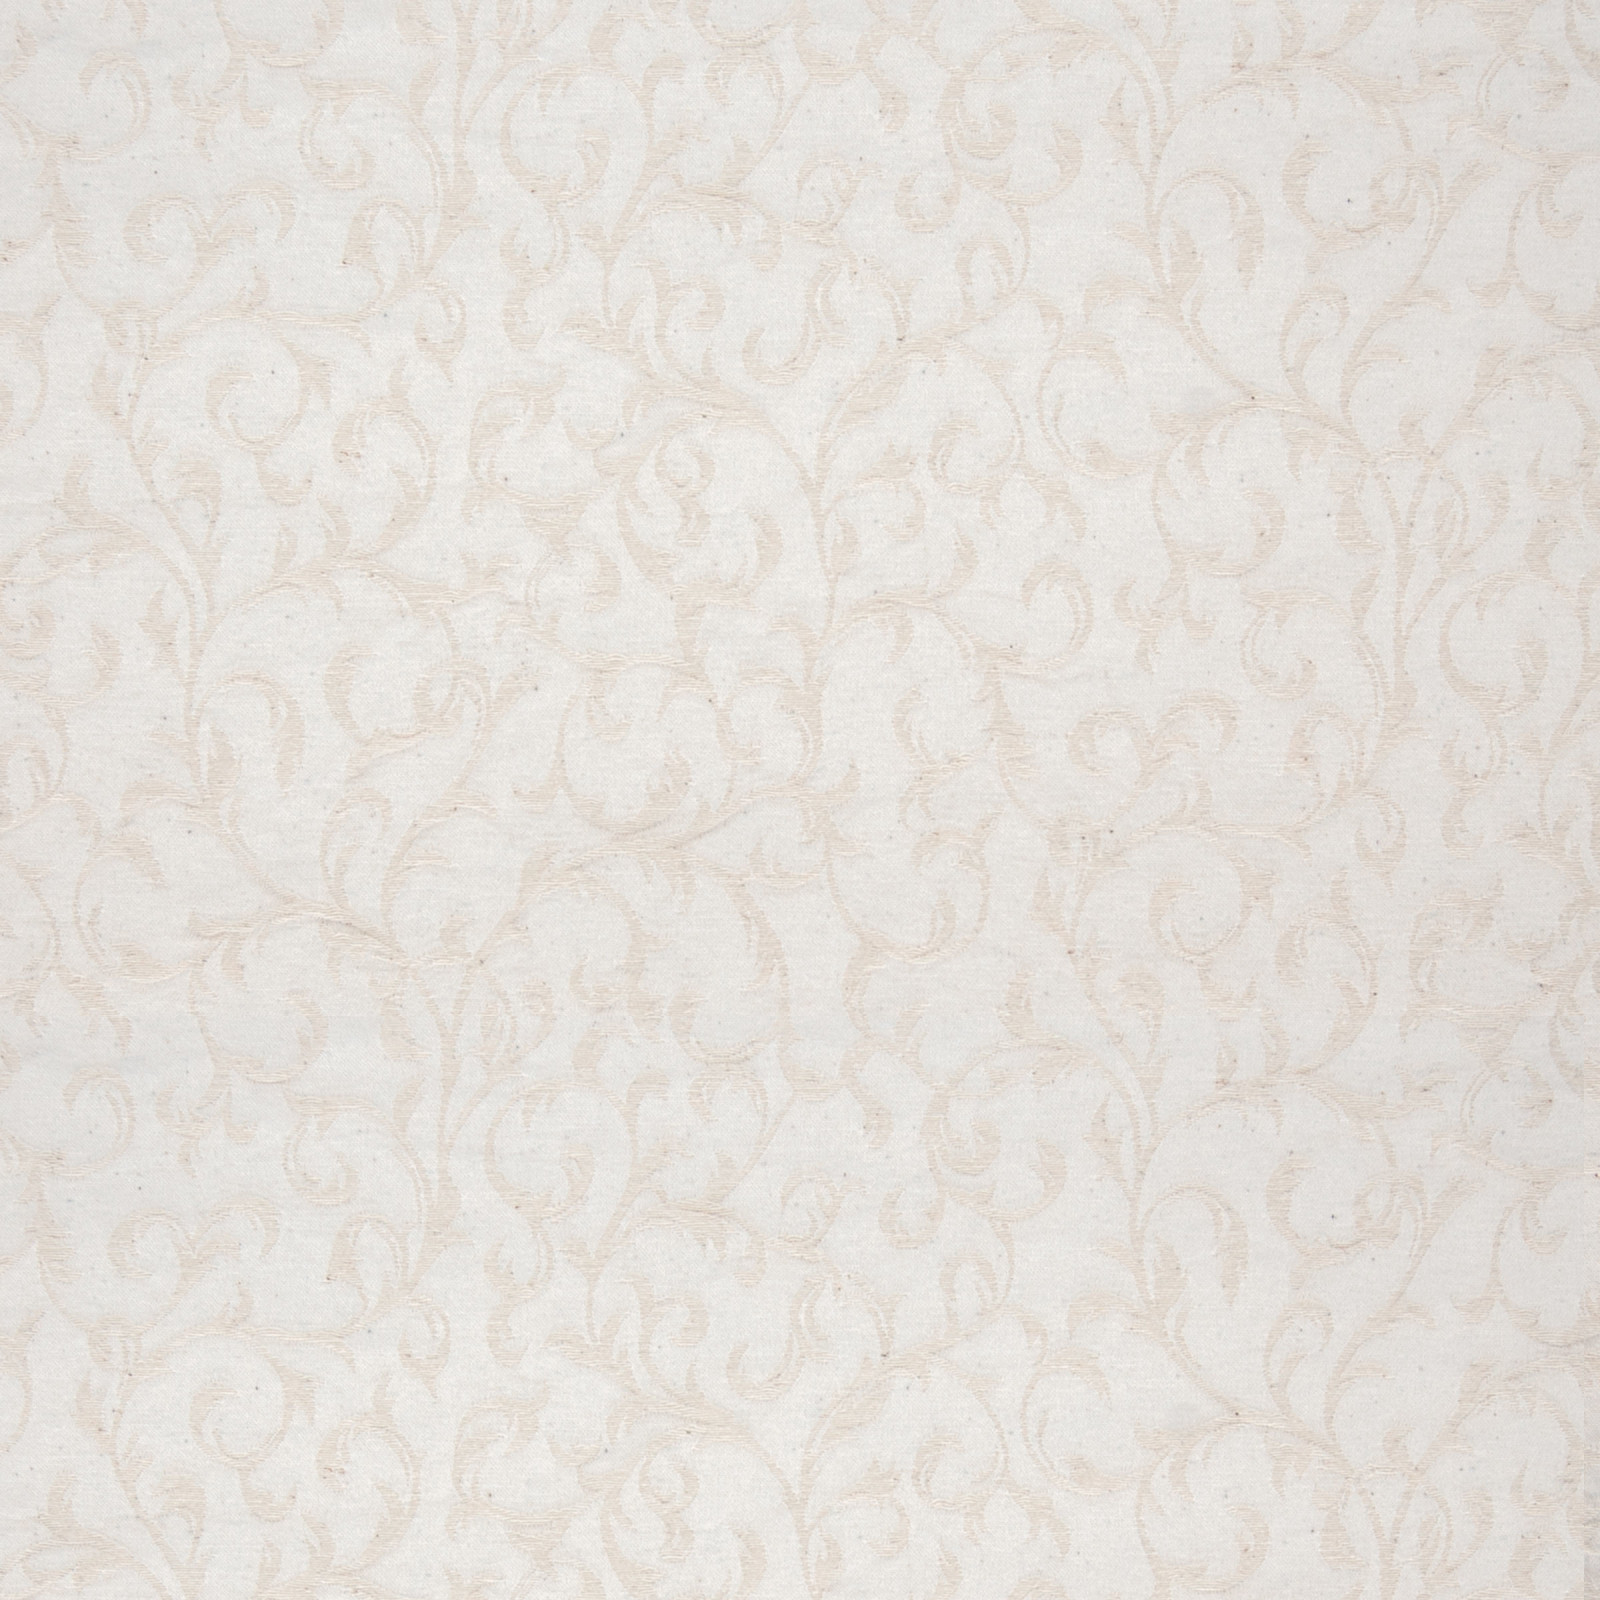 B5956 Bisque Greenhouse Fabrics